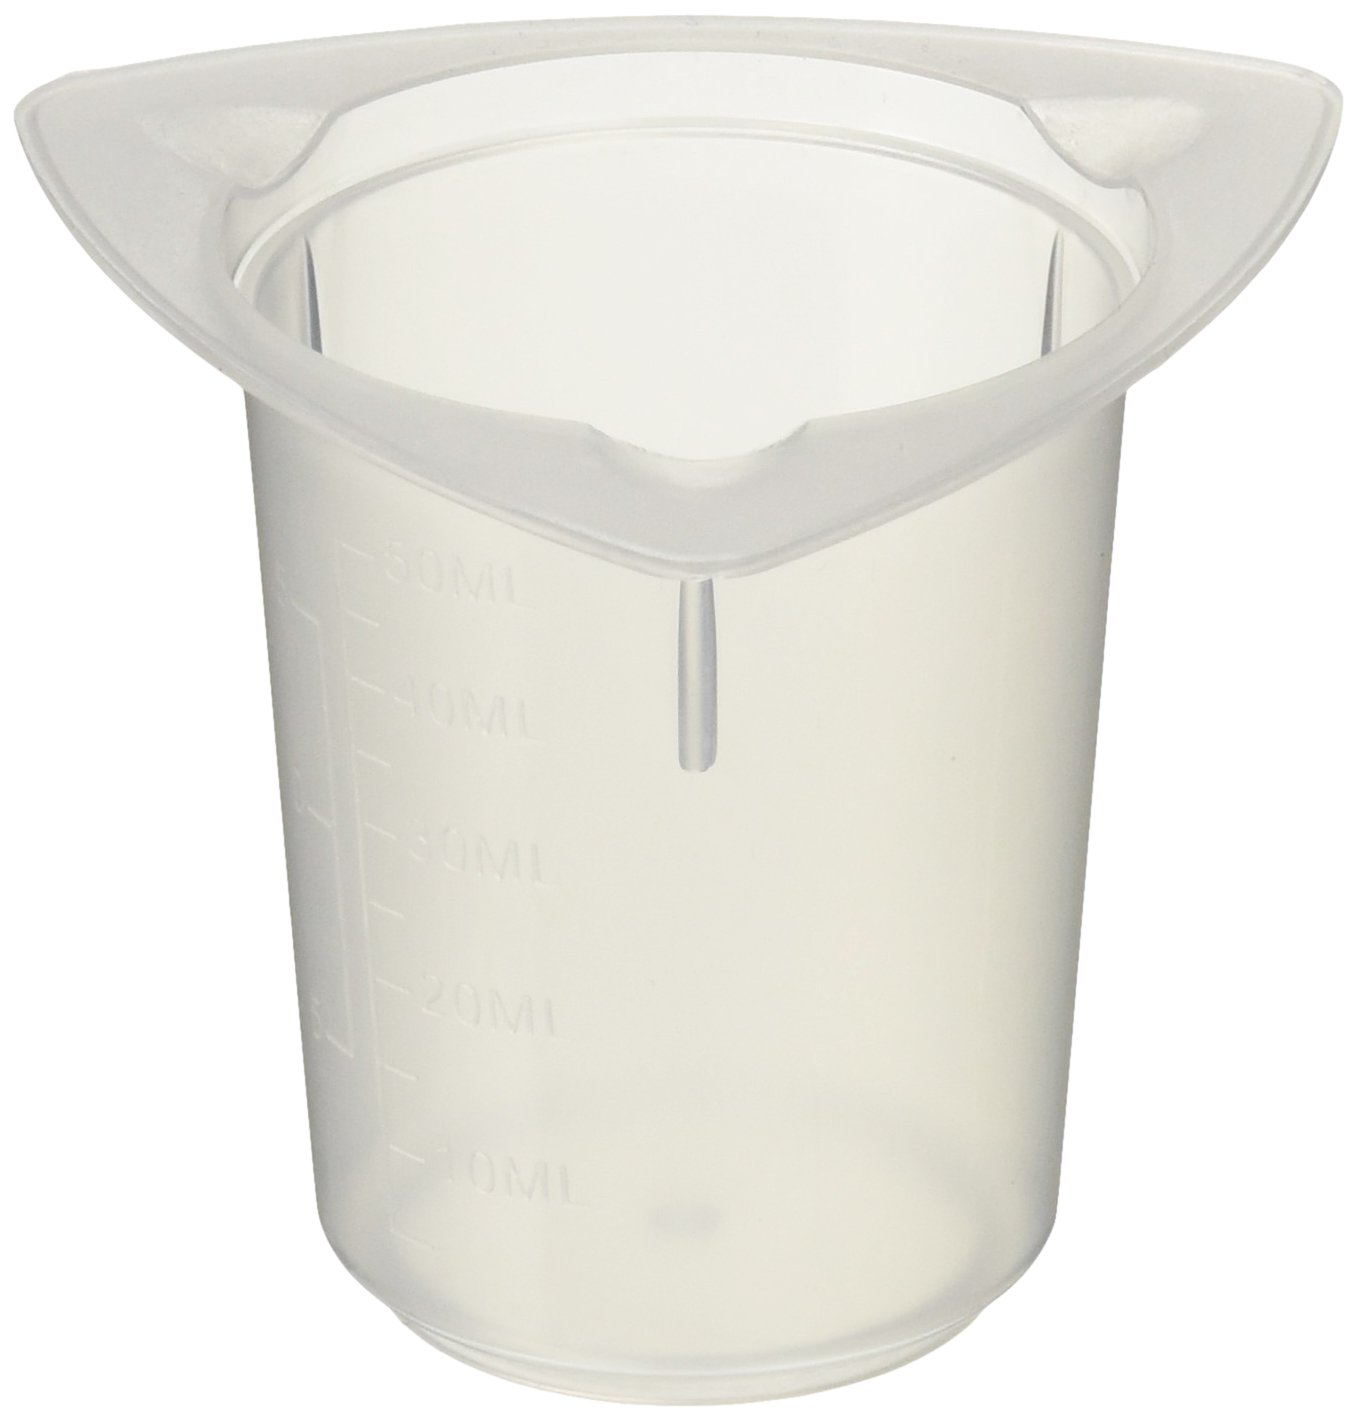 Fisher Scientific 14-955-111A Tri-Cornered quality assurance Beakers Lowest price challenge Polypropylene